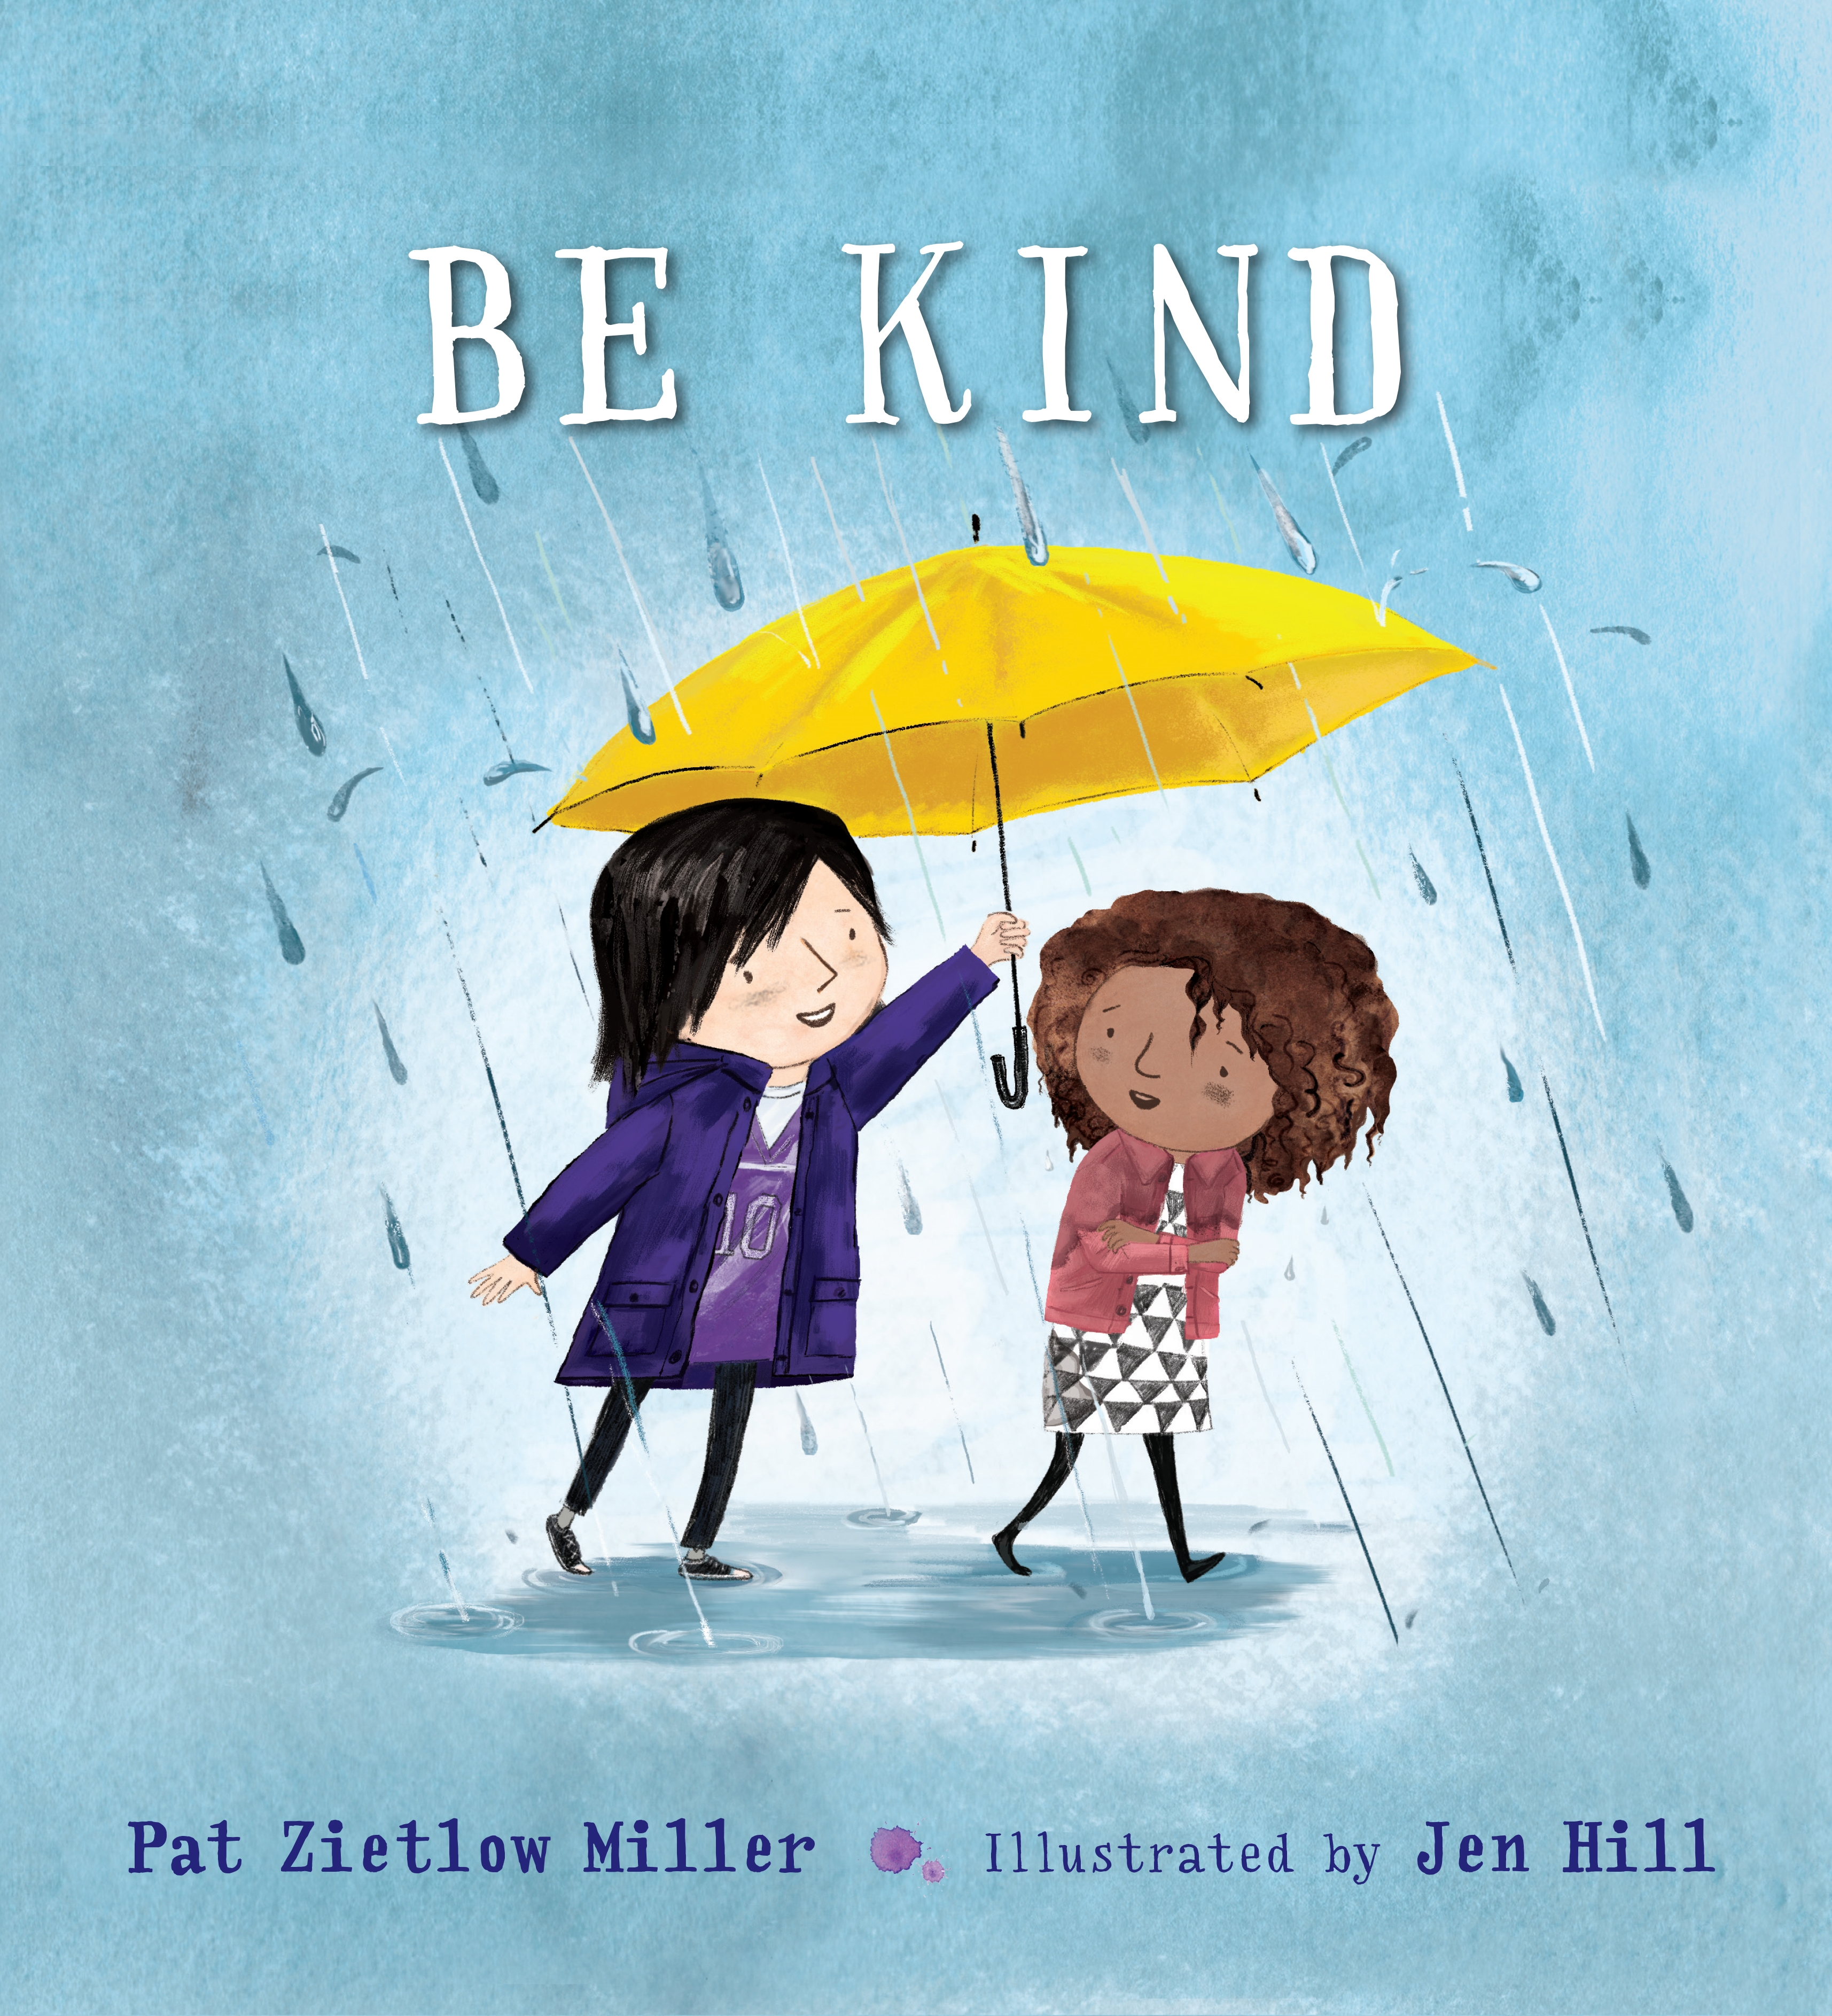 Sunday Story Time with Jen Hill (Illustrator of Be Kind)